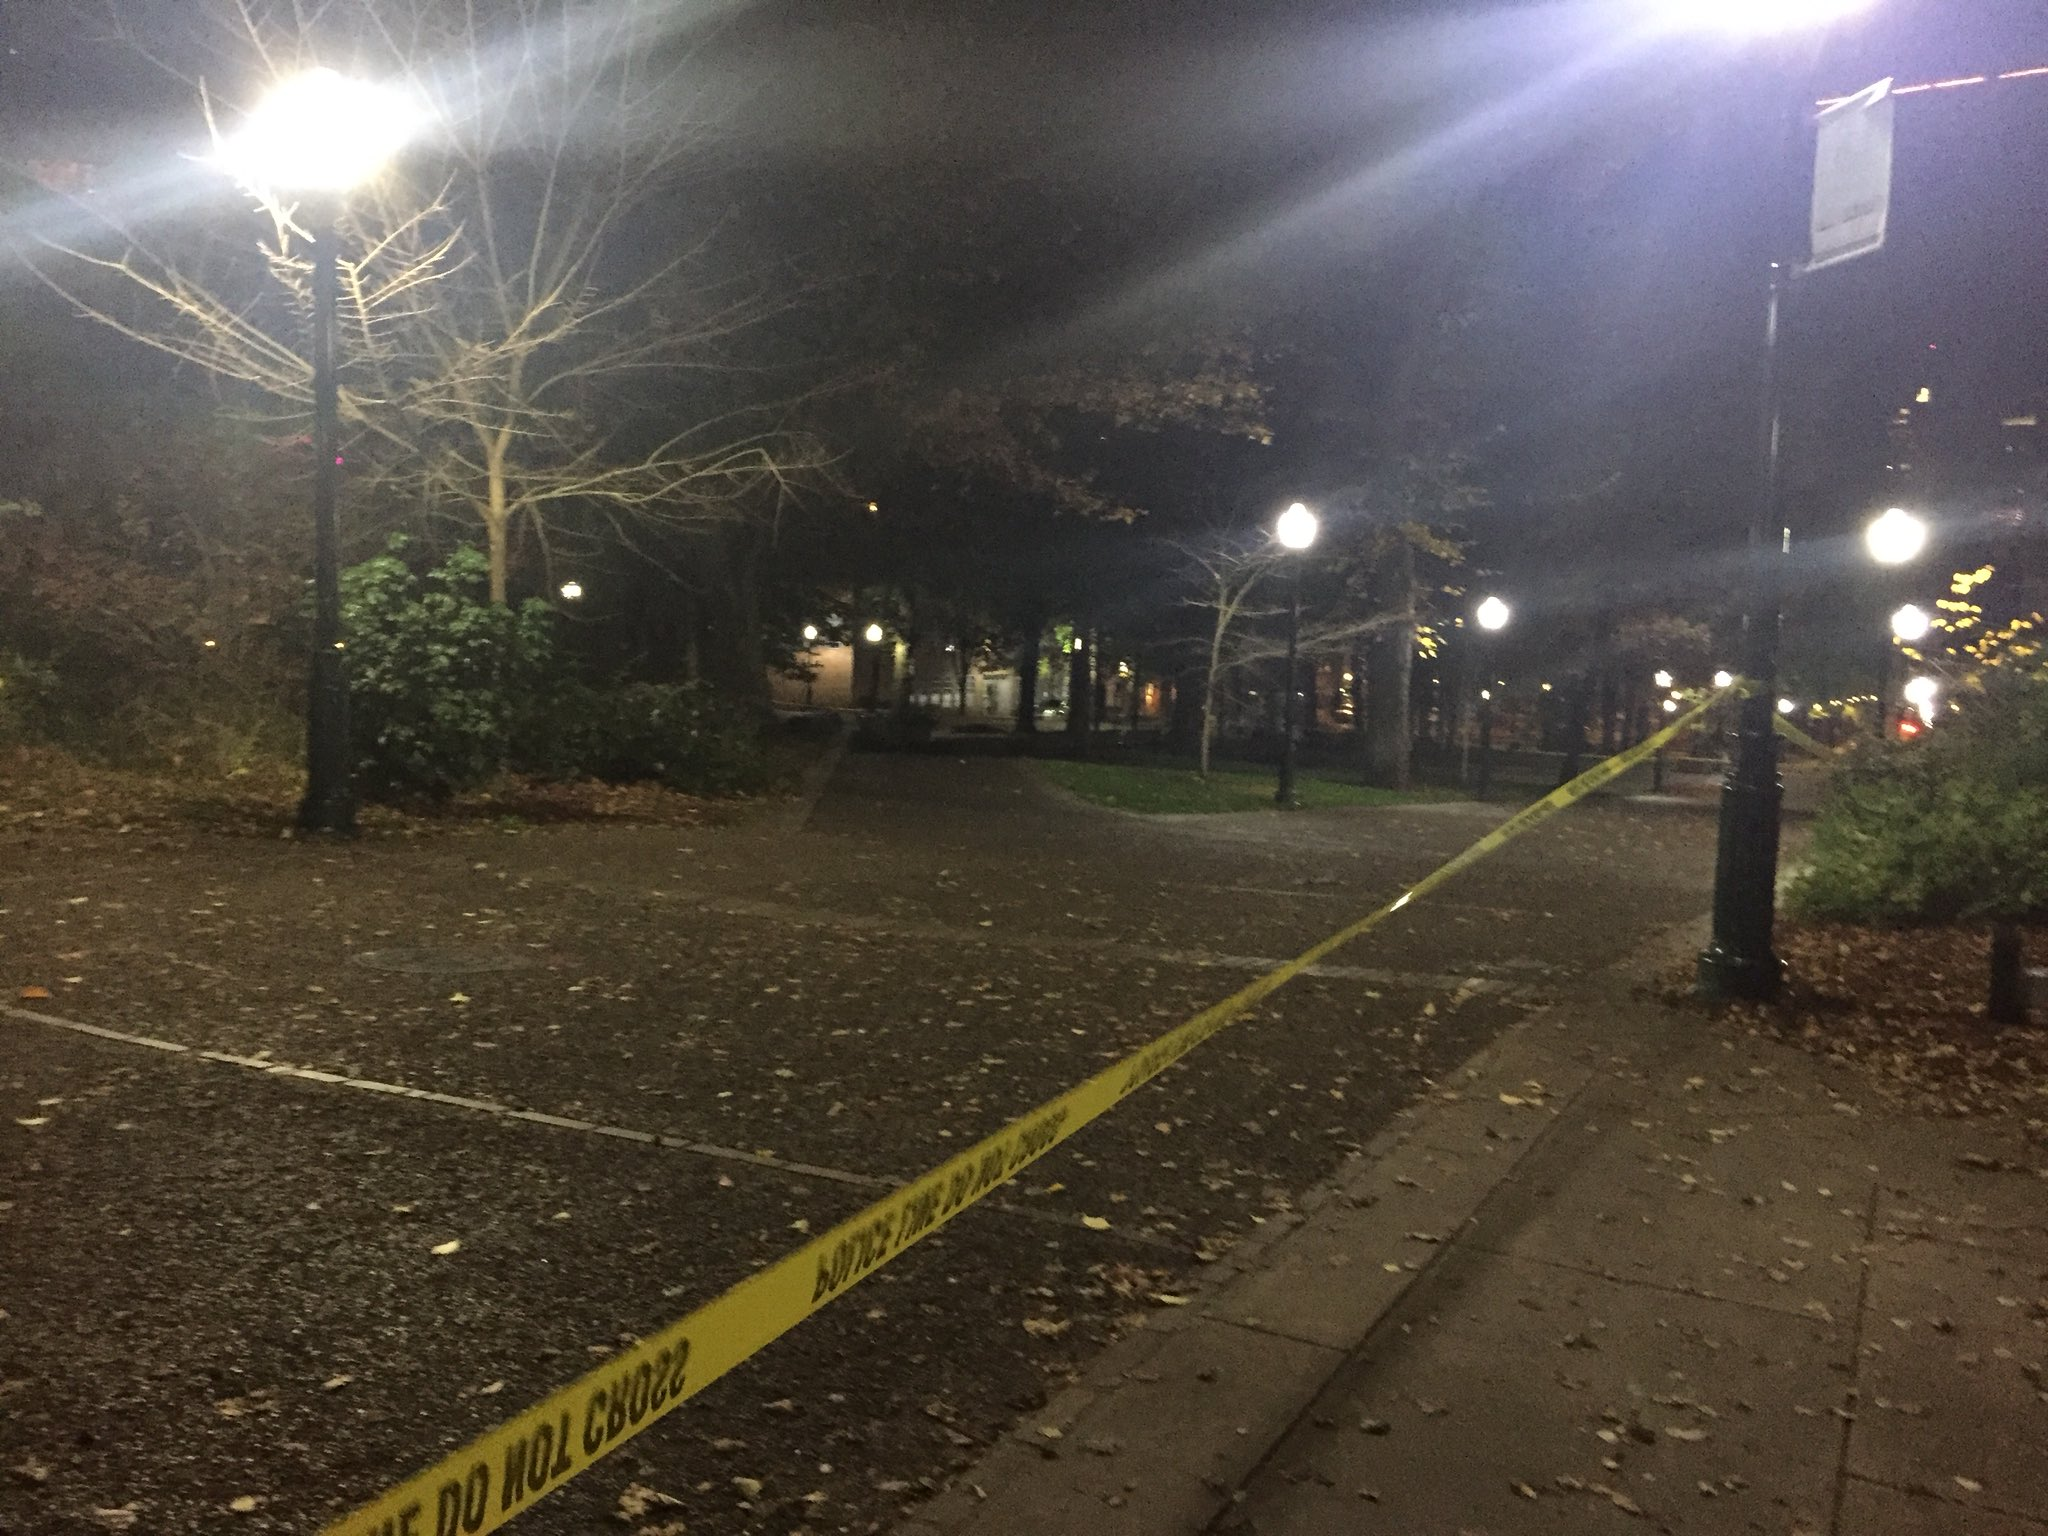 Police officers are conducting a death investigation on the Portland State University campus. They said they responded to a report of a shooting and found one person dead the morning of Nov. 7, 2017. (SBG photo)